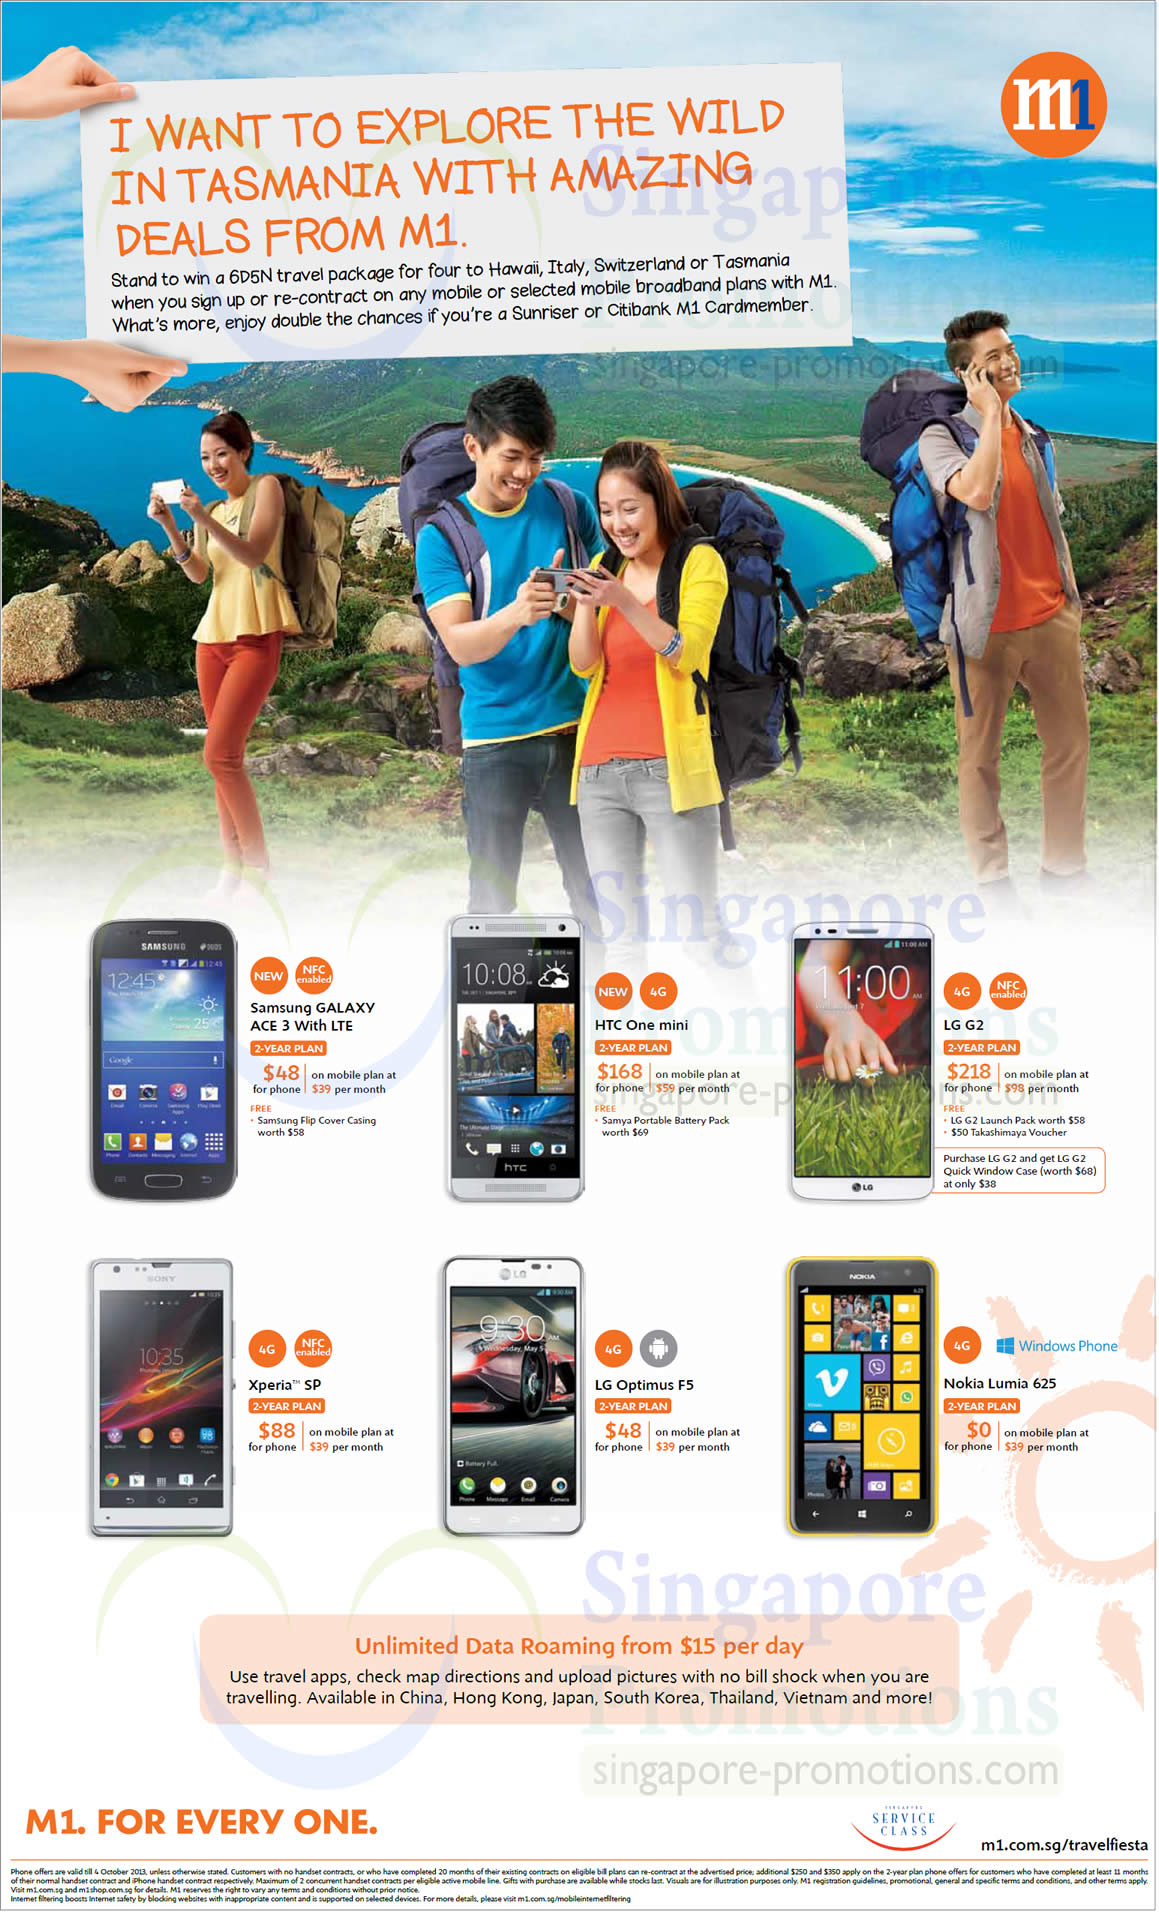 Samsung Galaxy Ace 3, HTC One Mini, LG G2, Sony Xperia SP, LG Optimus F5, Nokia Lumia 625